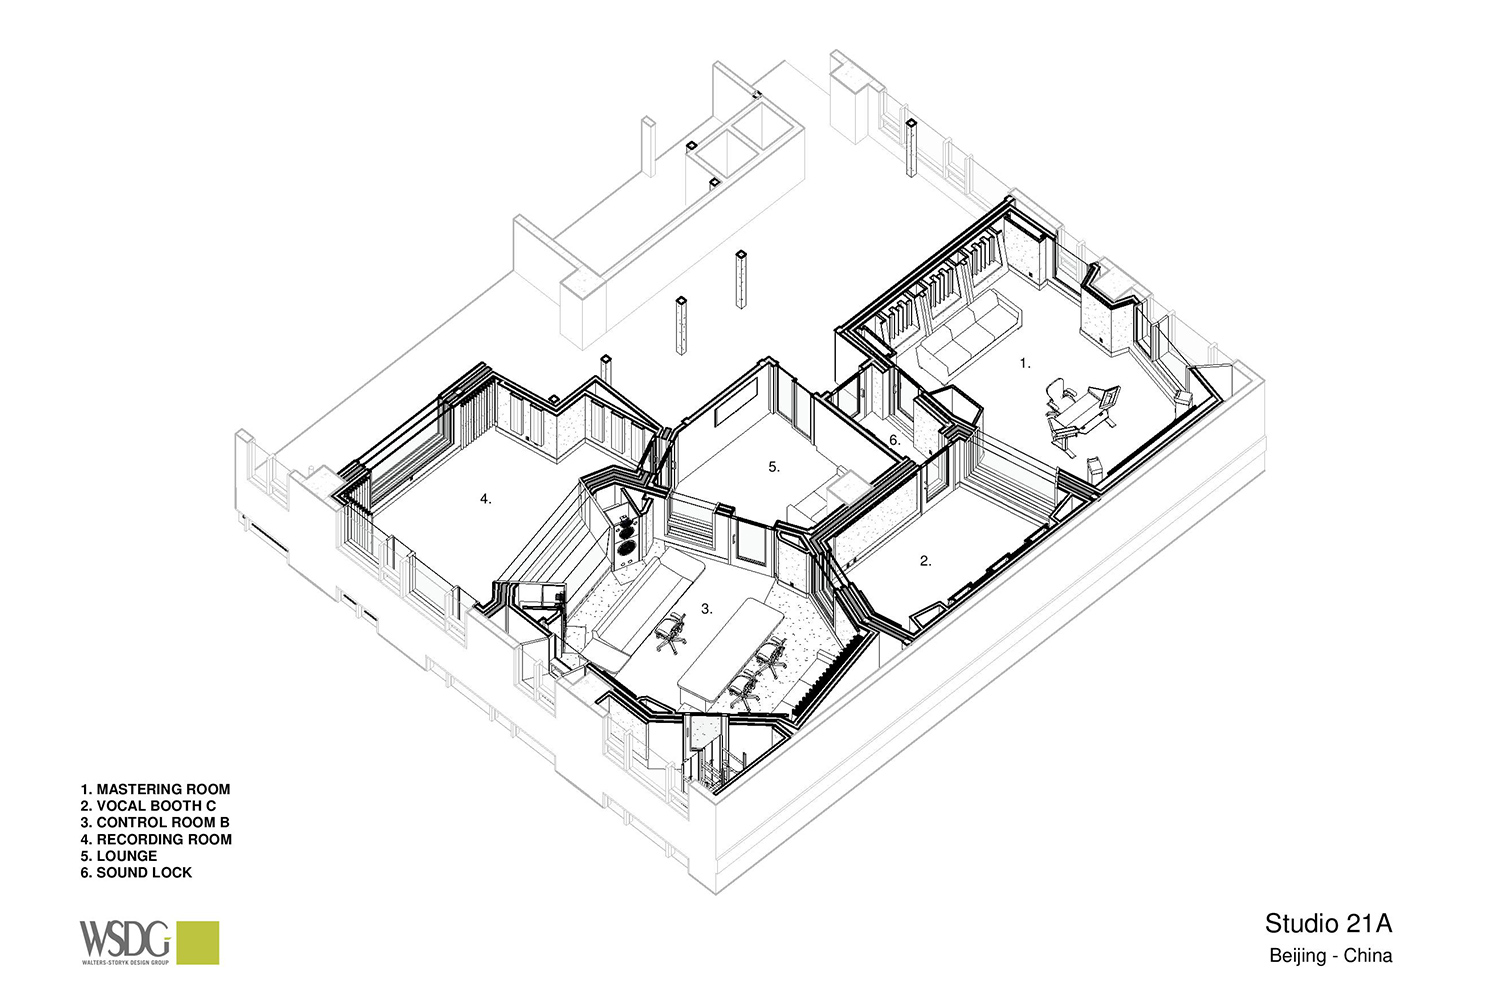 Intrigued by WSDG's reputation in designing the best recording studios in the world, multi-talented recording and mixing engineer TC Zhou started a deep collaboration with our global team for his brand-new studio facility in Beijing, China. Axonometric View Presentation Drawing 1.